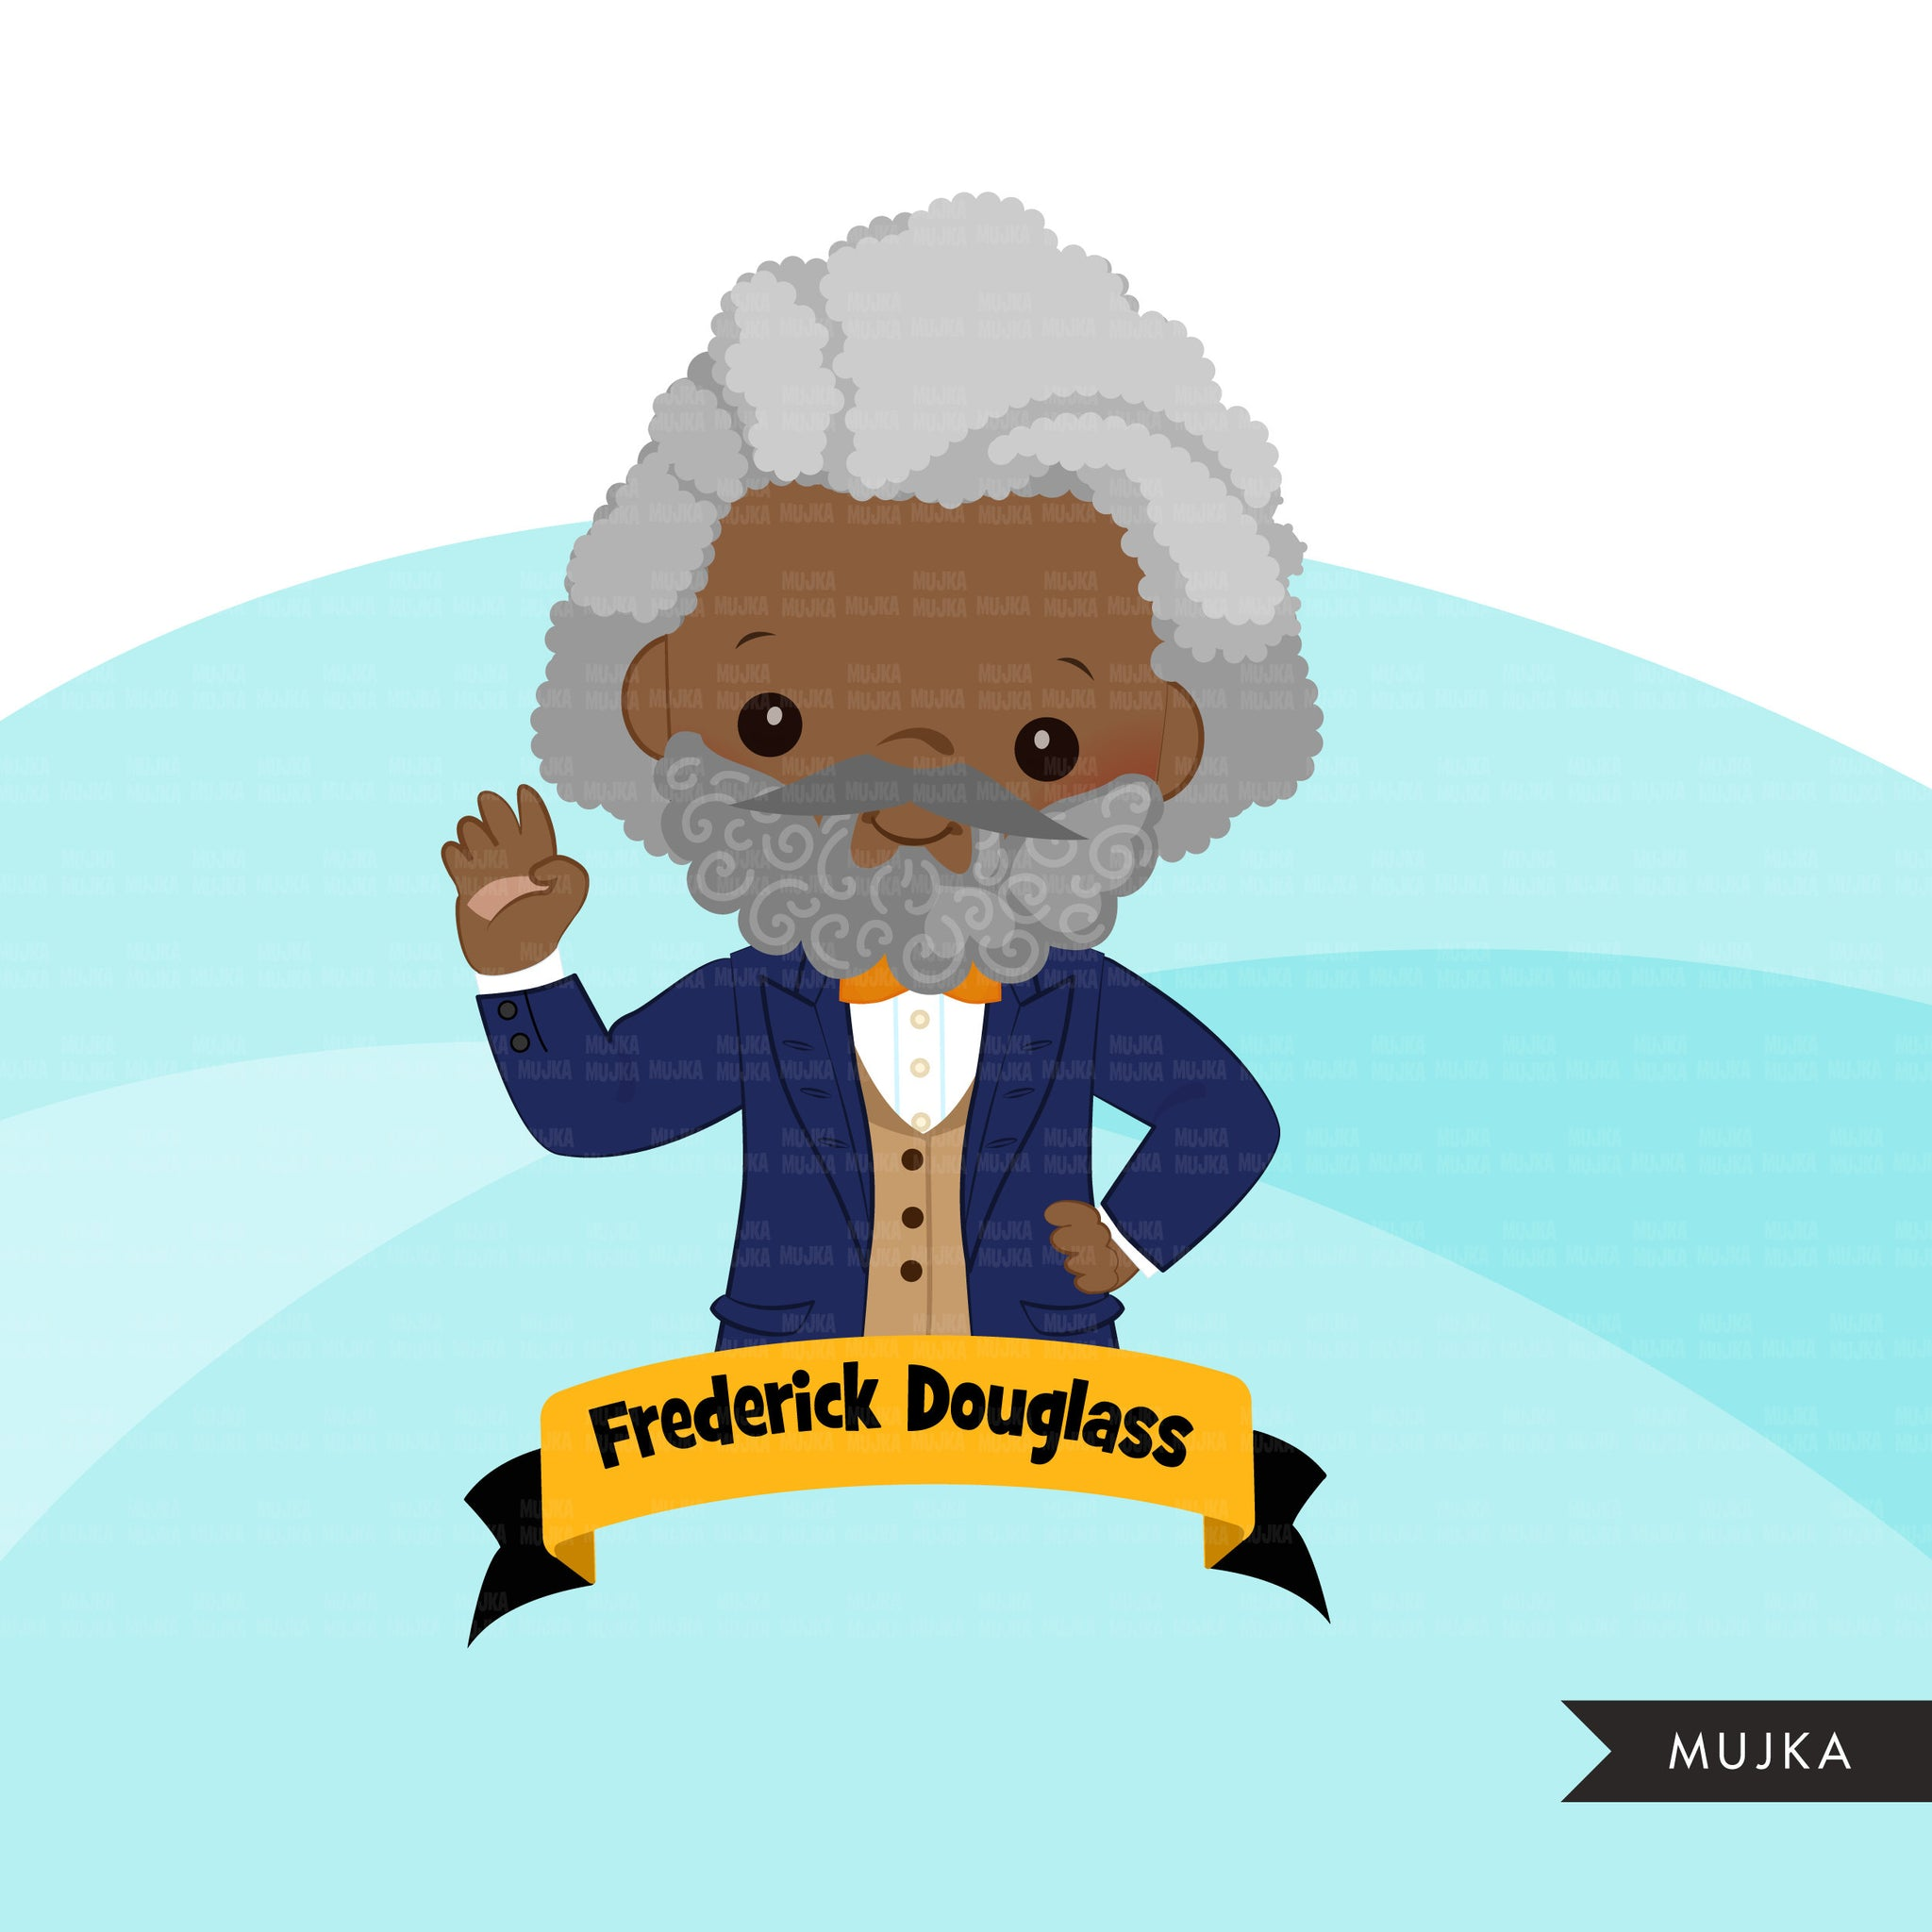 Black history clipart, black history male figures Frederick Douglass, Barack Obama, George Washington Carver, Thurgood Marshall clip art PNG